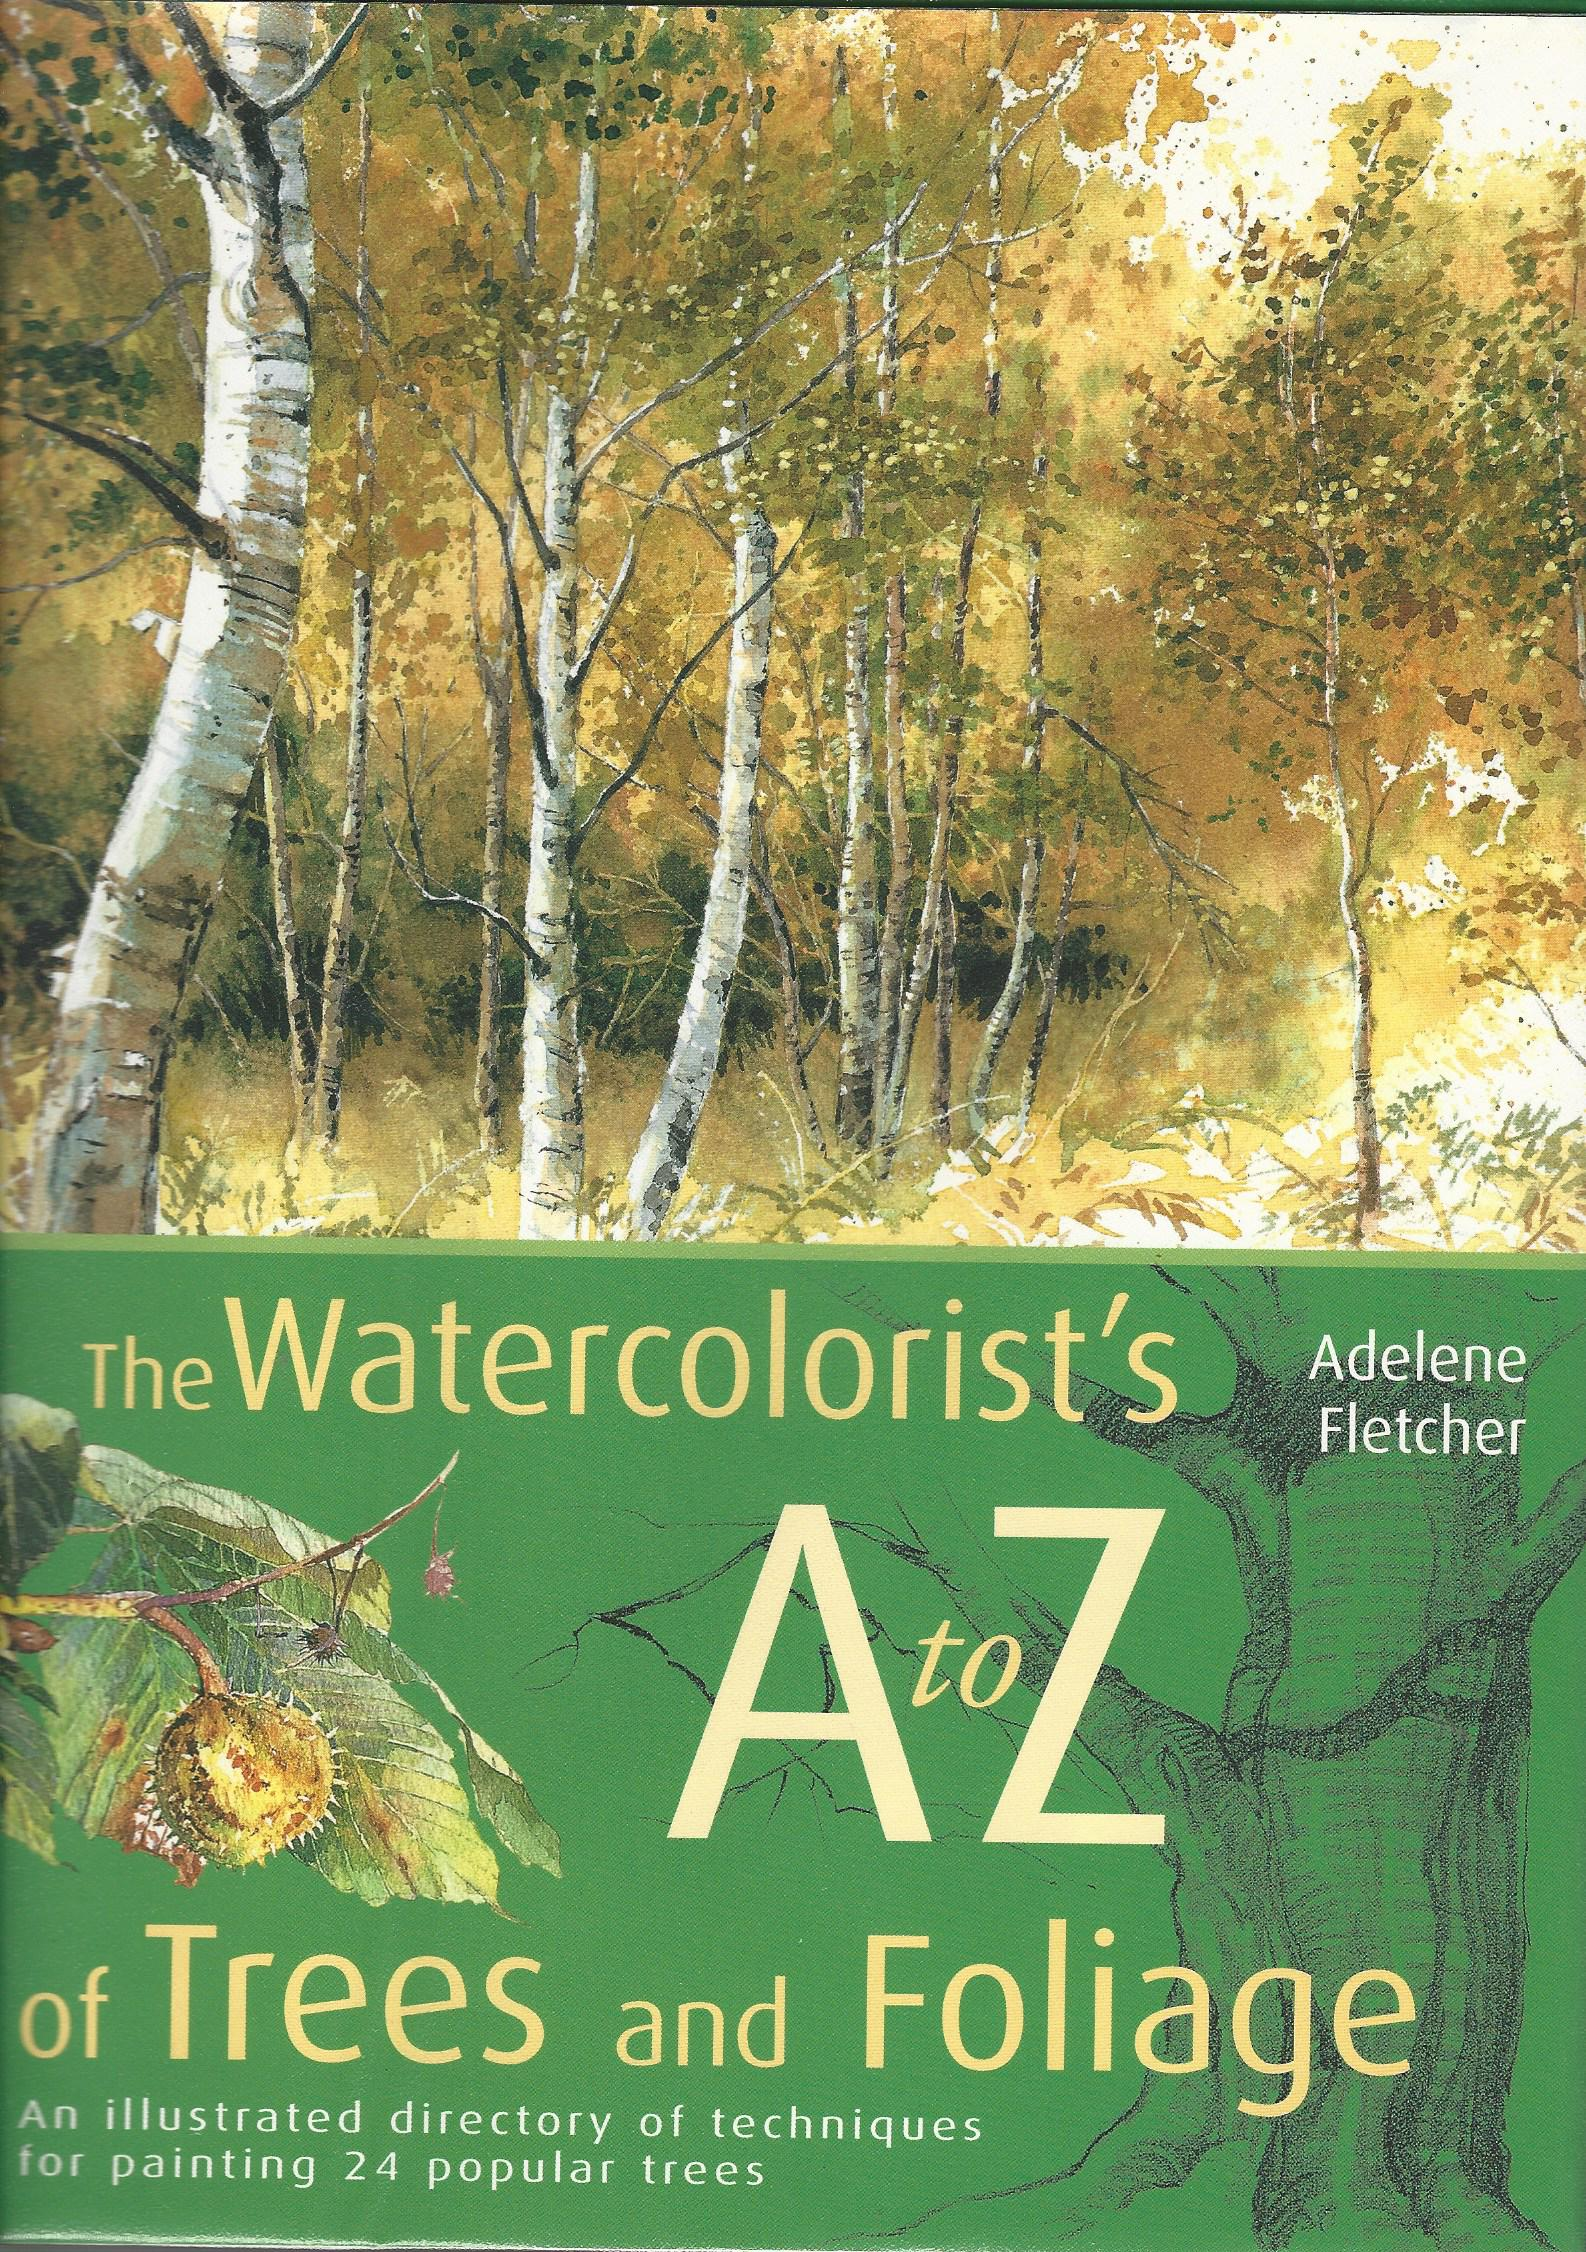 Image for Watercolorist's A to Z of Trees and Foliage.